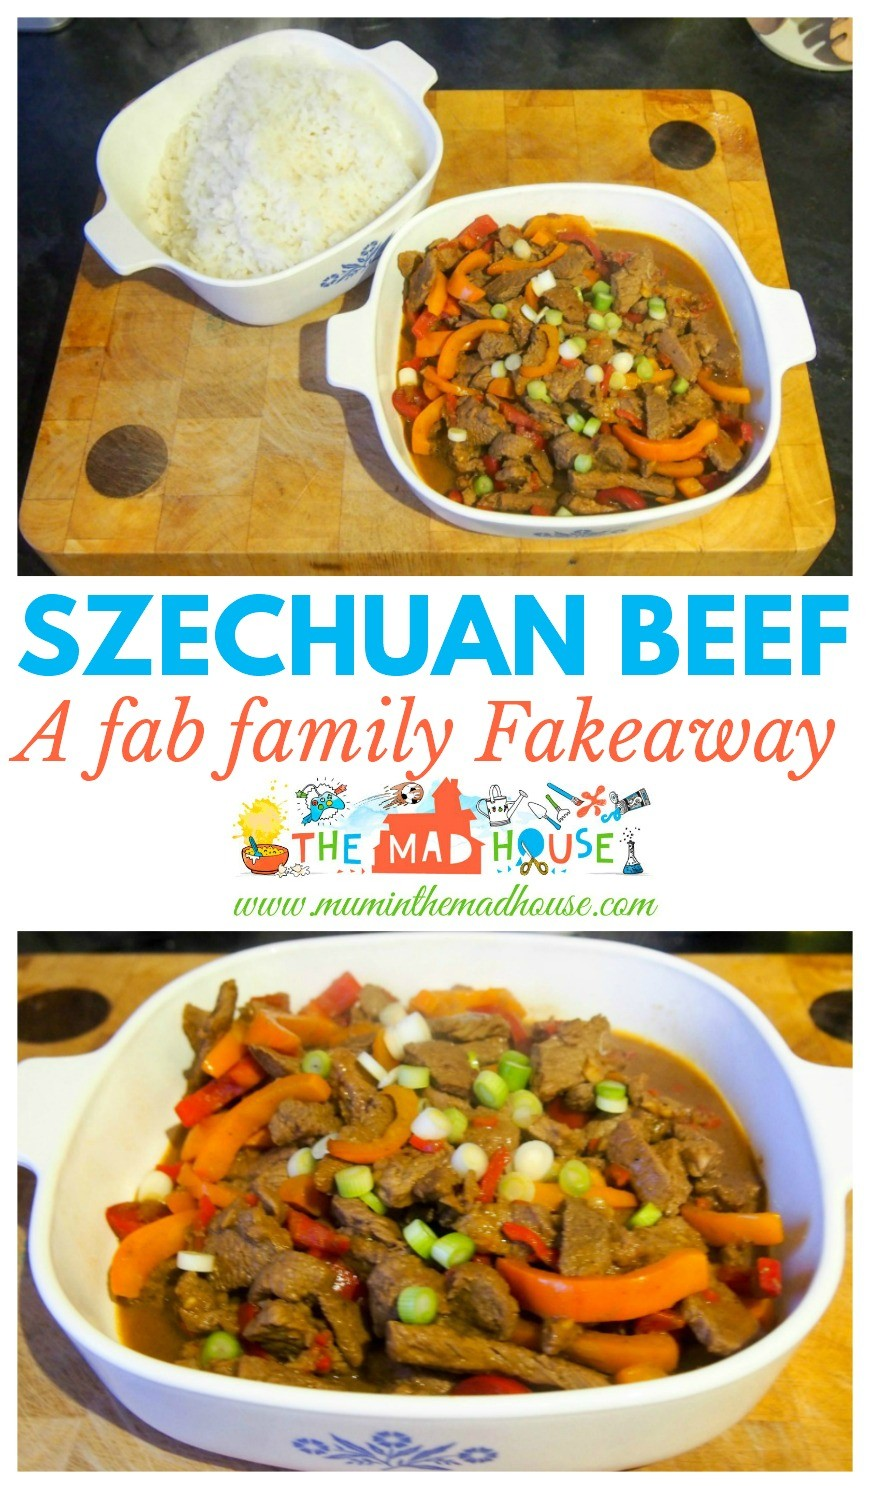 This Szechuan Beef recipe is a real crowd-pleaser and so simple to make. It is a great fakeaway for all the family.